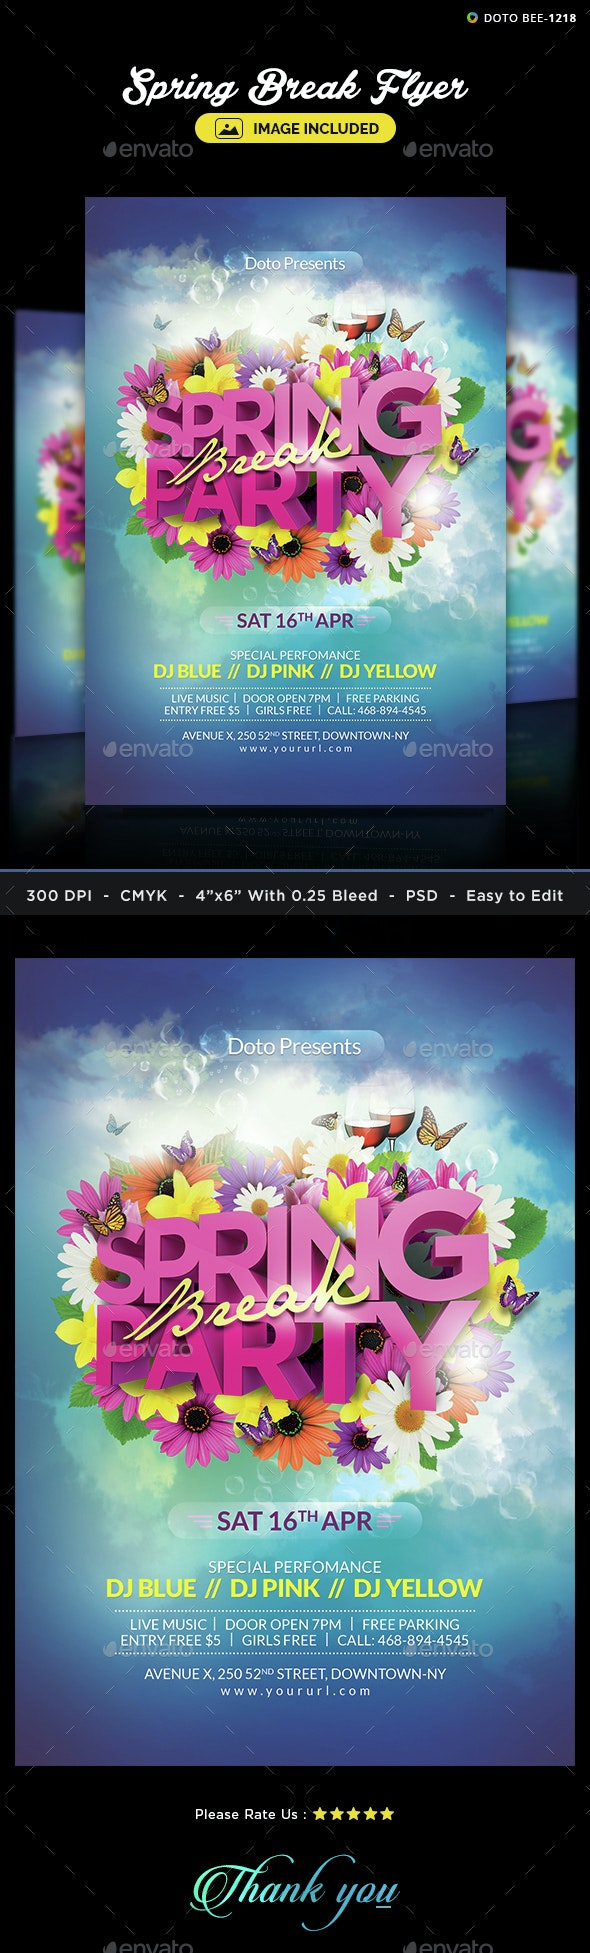 Spring Flyer Template - Image Included - Clubs & Parties Events